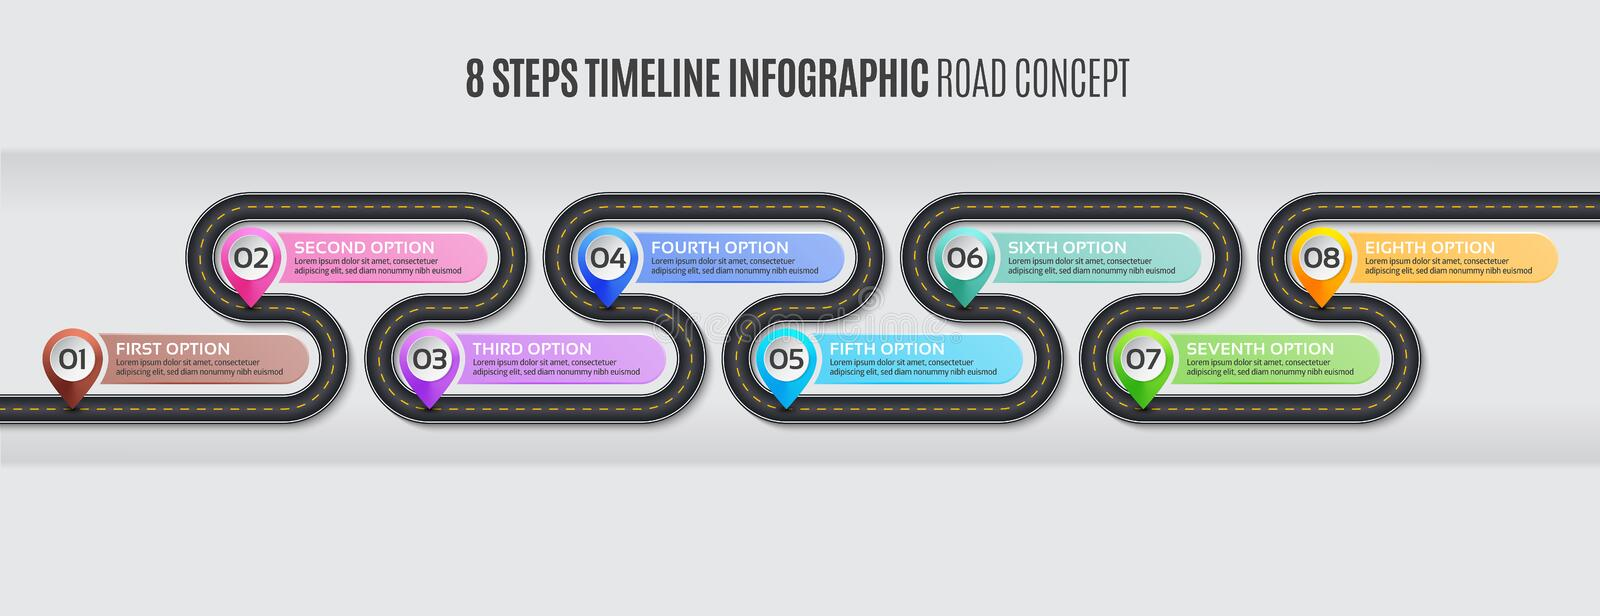 Navigation map infographic 8 steps timeline road concept. Navigation map infographic 8 steps timeline concept. Vector illustration winding road. Color swatches stock illustration